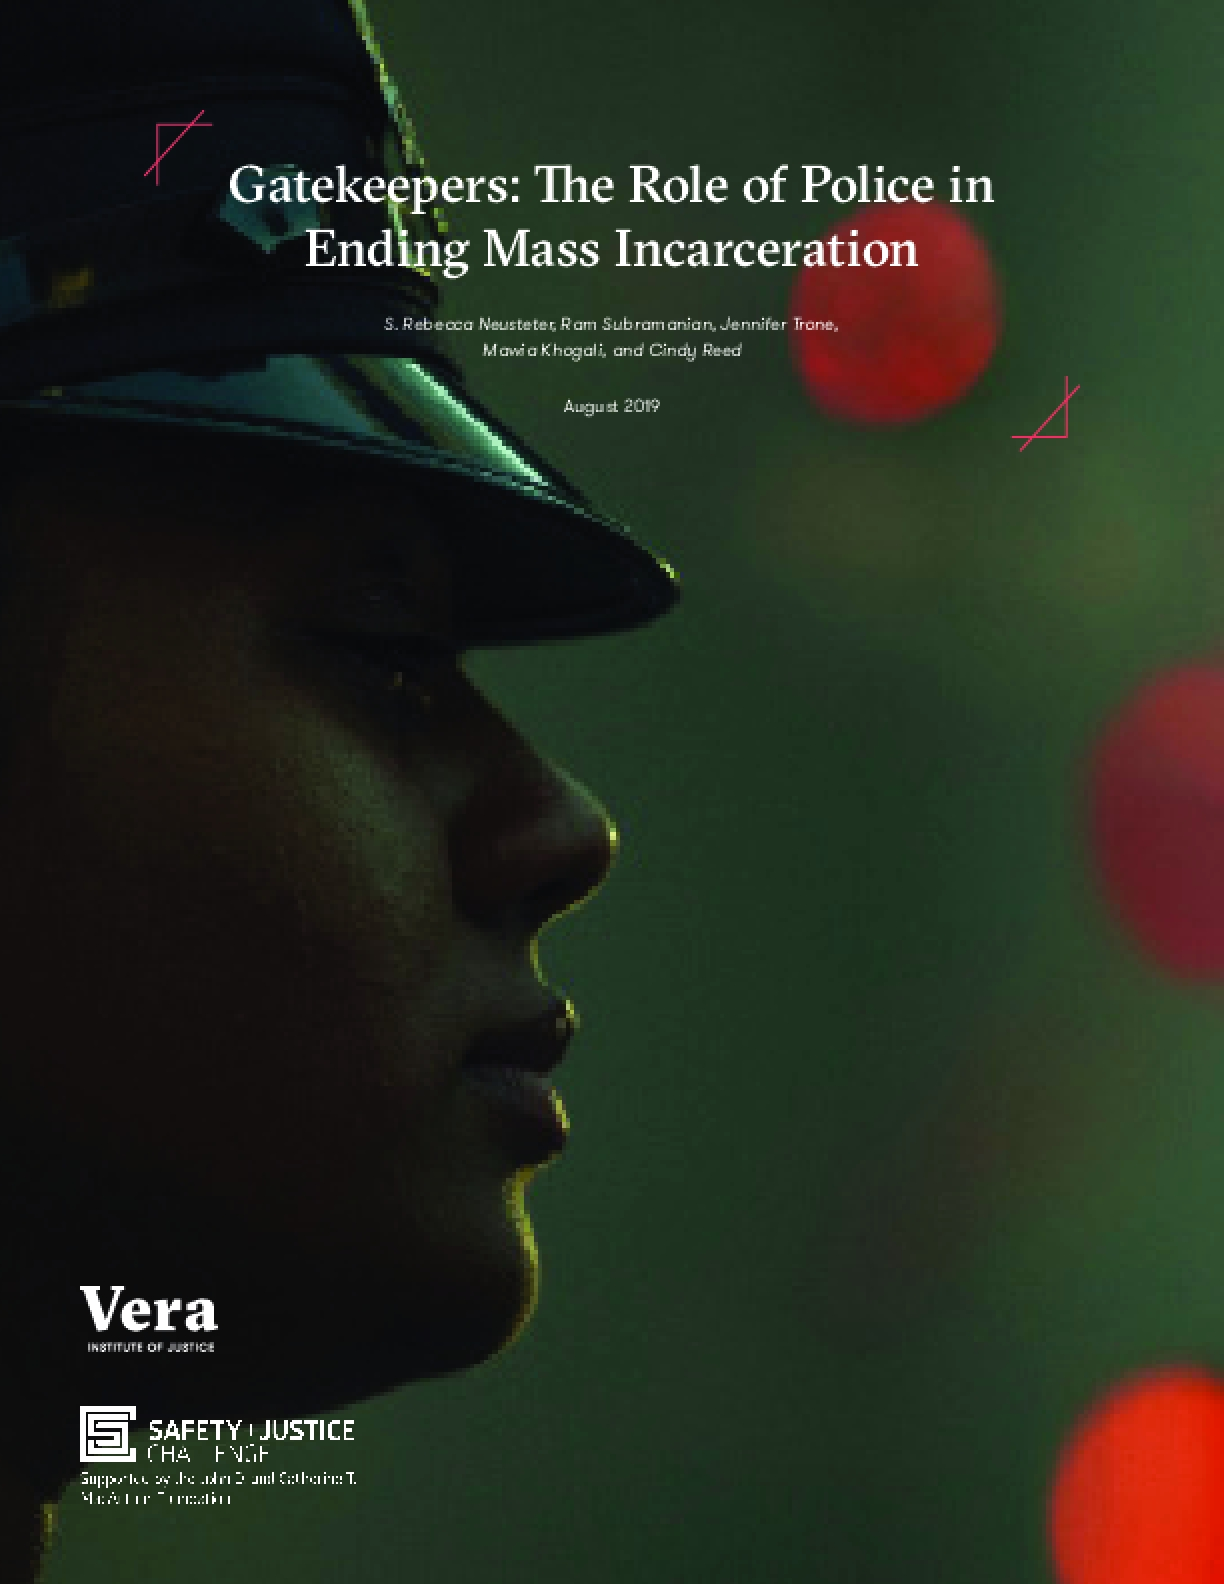 Gatekeepers: The Role of Police in Ending Mass Incarceration